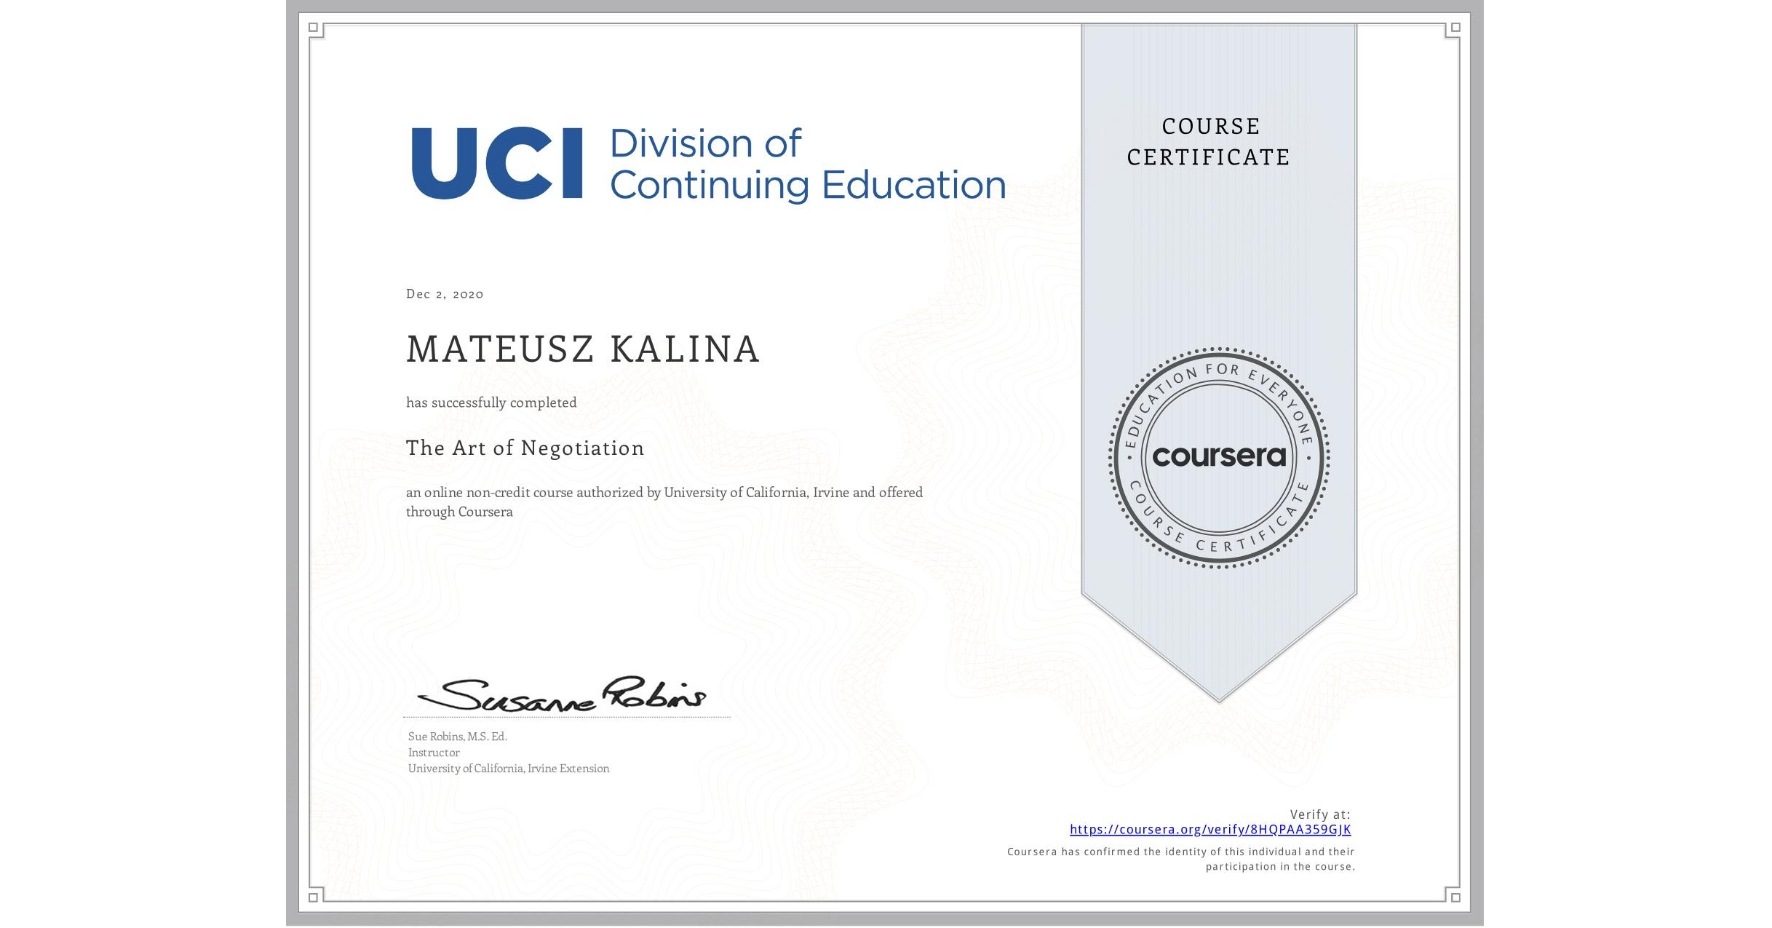 View certificate for MATEUSZ KALINA, The Art of Negotiation, an online non-credit course authorized by University of California, Irvine and offered through Coursera